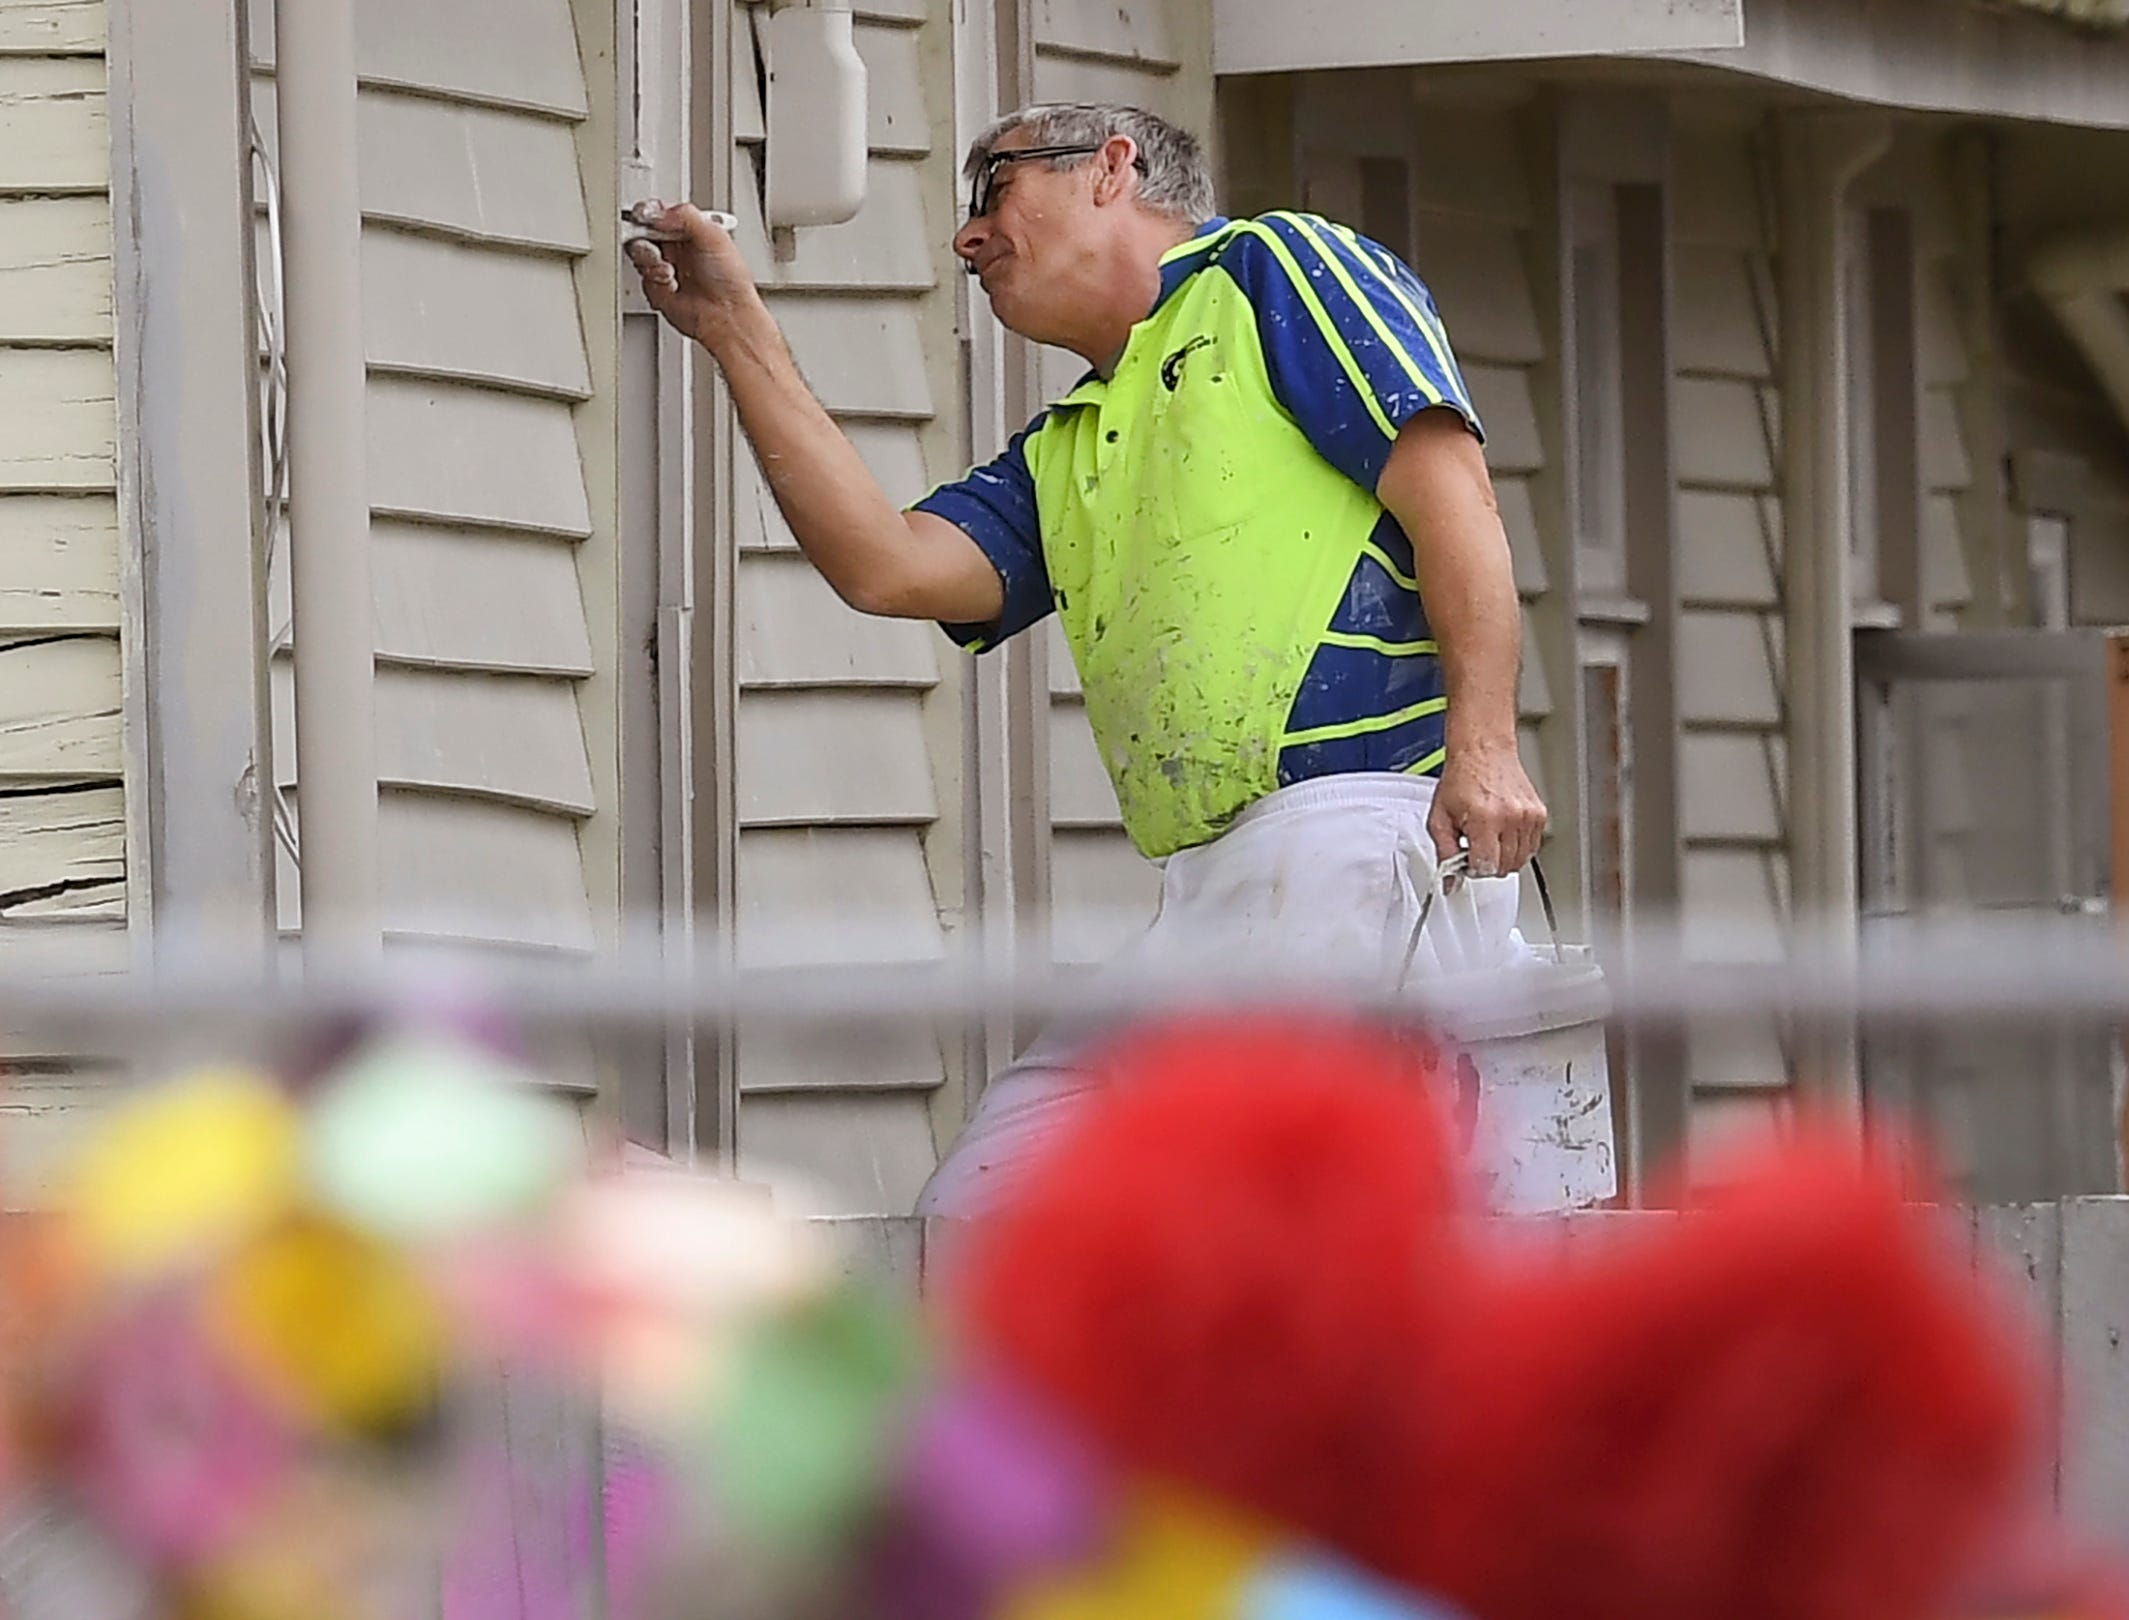 A painter works on the side of the Linwood Mosque in Christchurch on March 21, 2019, six days after the twin mosque shooting massacre that claimed the lives of fifty people.